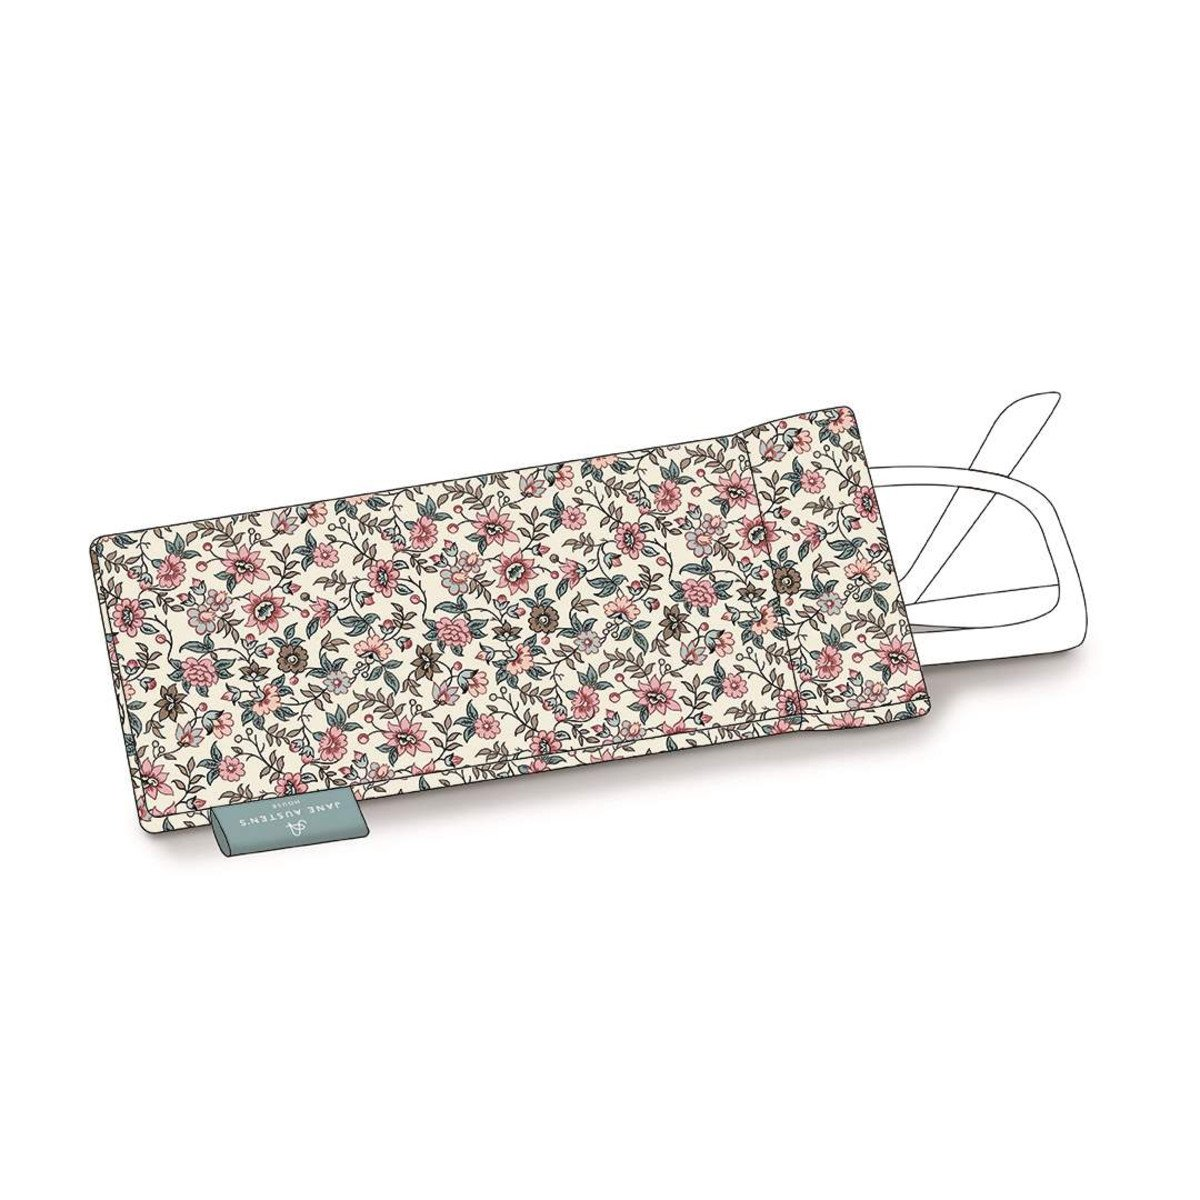 Jane Austen Eye Glasses Soft Case